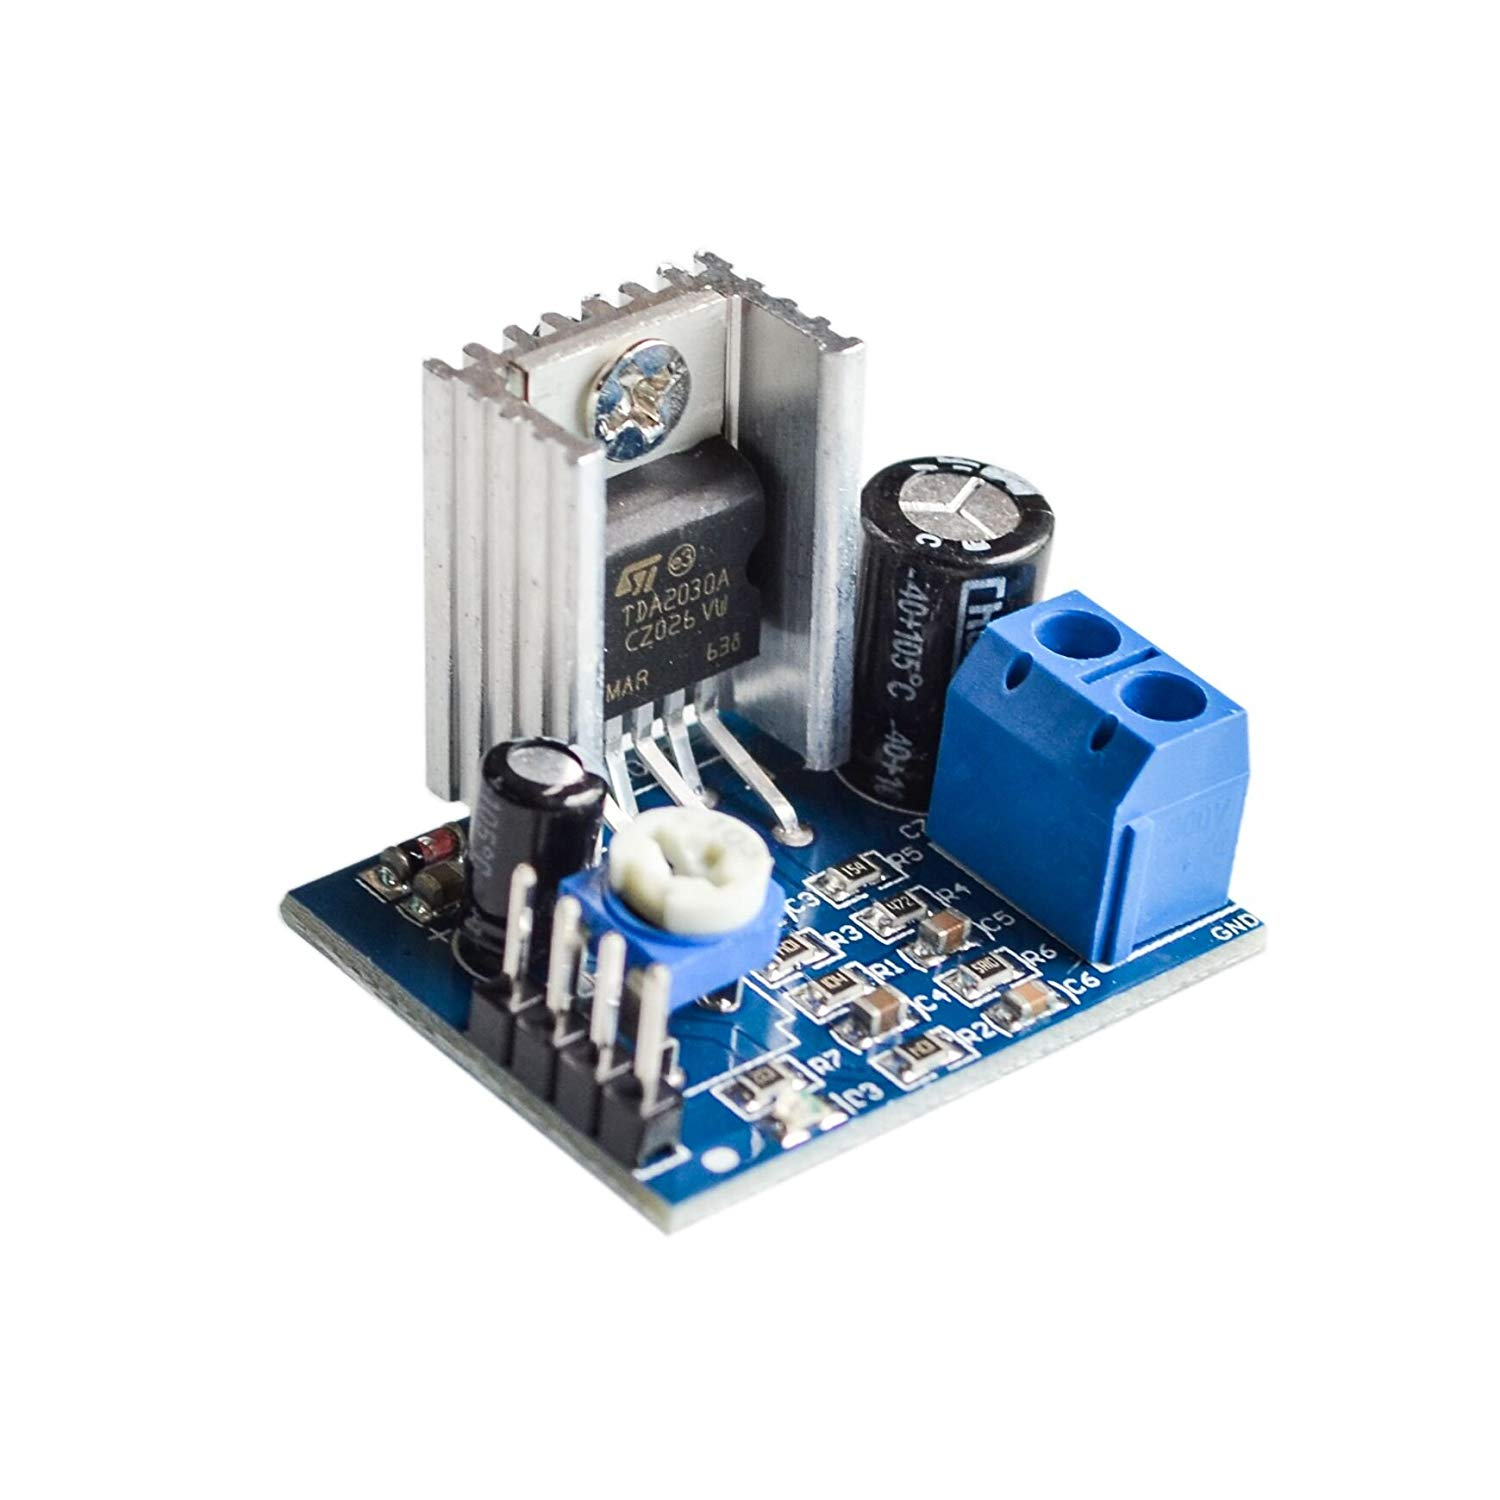 Cheap Audio Power Amp Module Find Deals On Tda2030 Hi Fi Amplifier Circuit Electronic Project Get Quotations Seajunn 10pcs Lot Tda2030a Single Supply Board